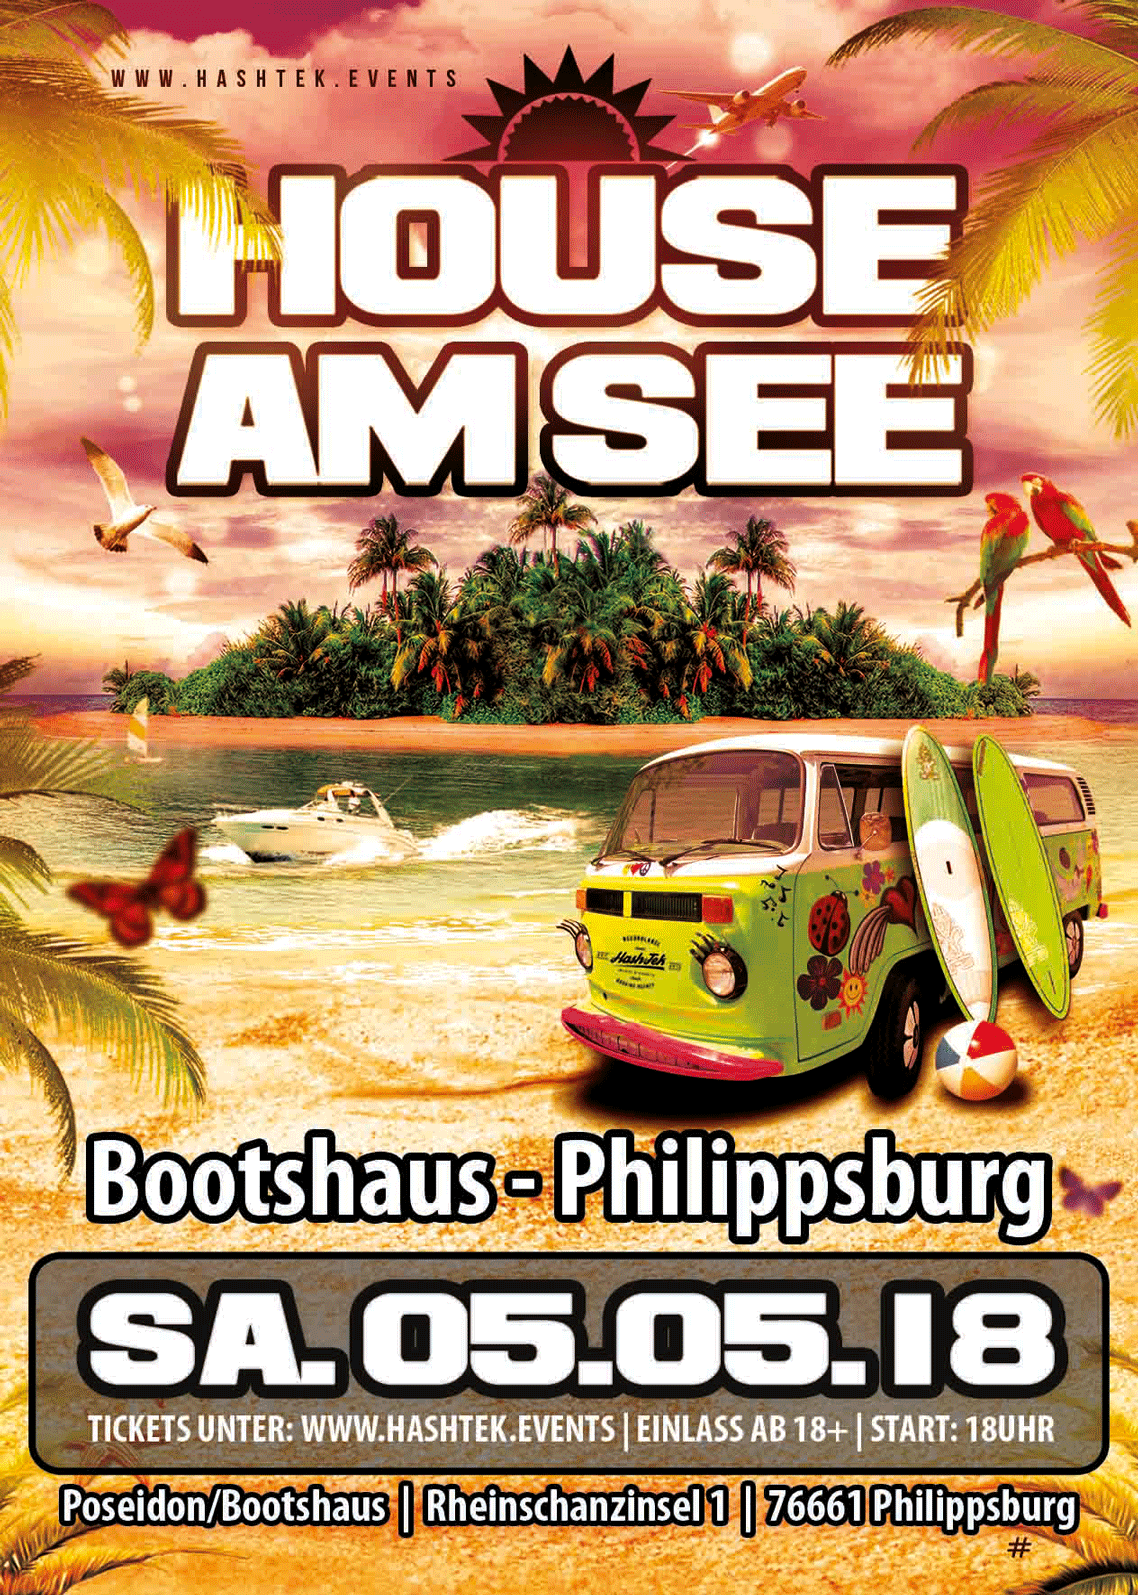 HOUSE AM SEE - Philippsburg - Bootshaus